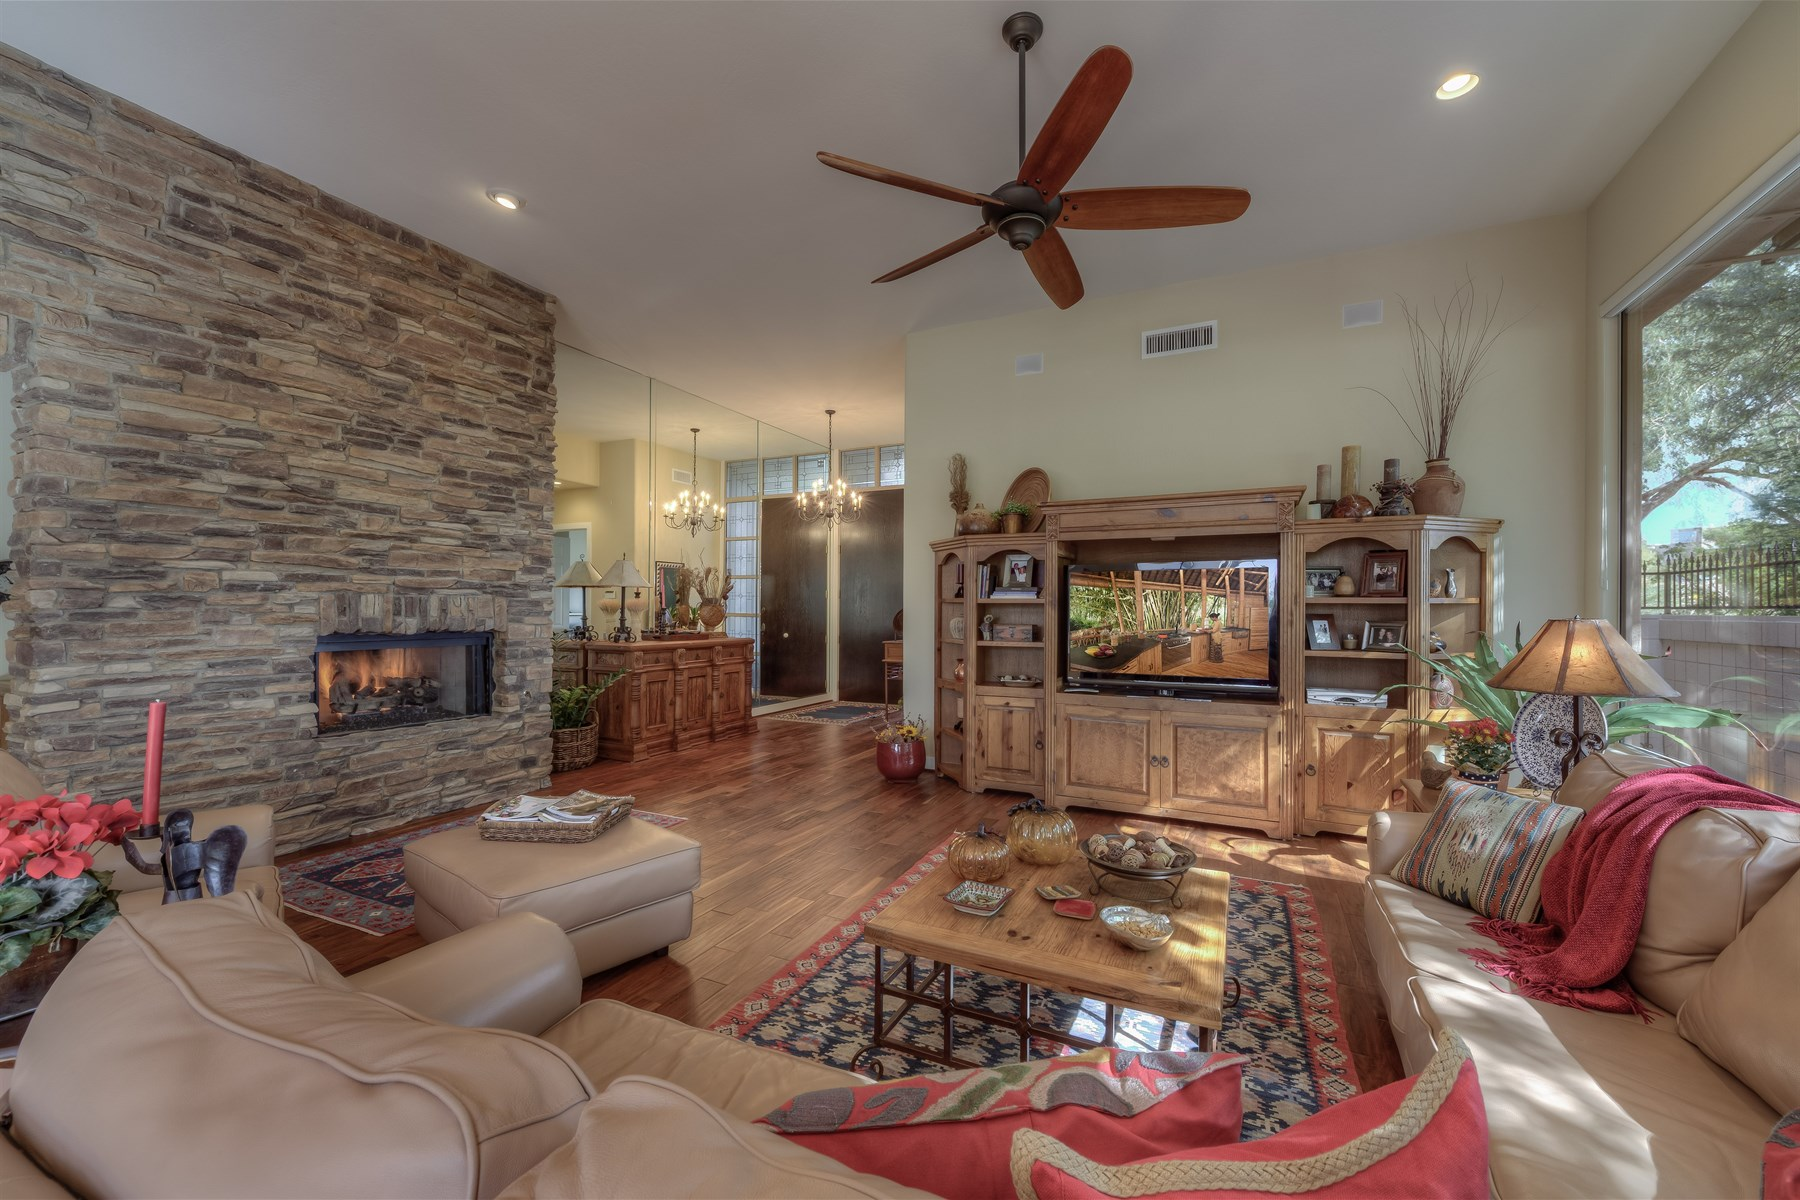 Single Family Home for Sale at Fabulous, single level remodeled home at the Biltmore Hillside Villas 6412 N 31st Pl Phoenix, Arizona 85016 United States